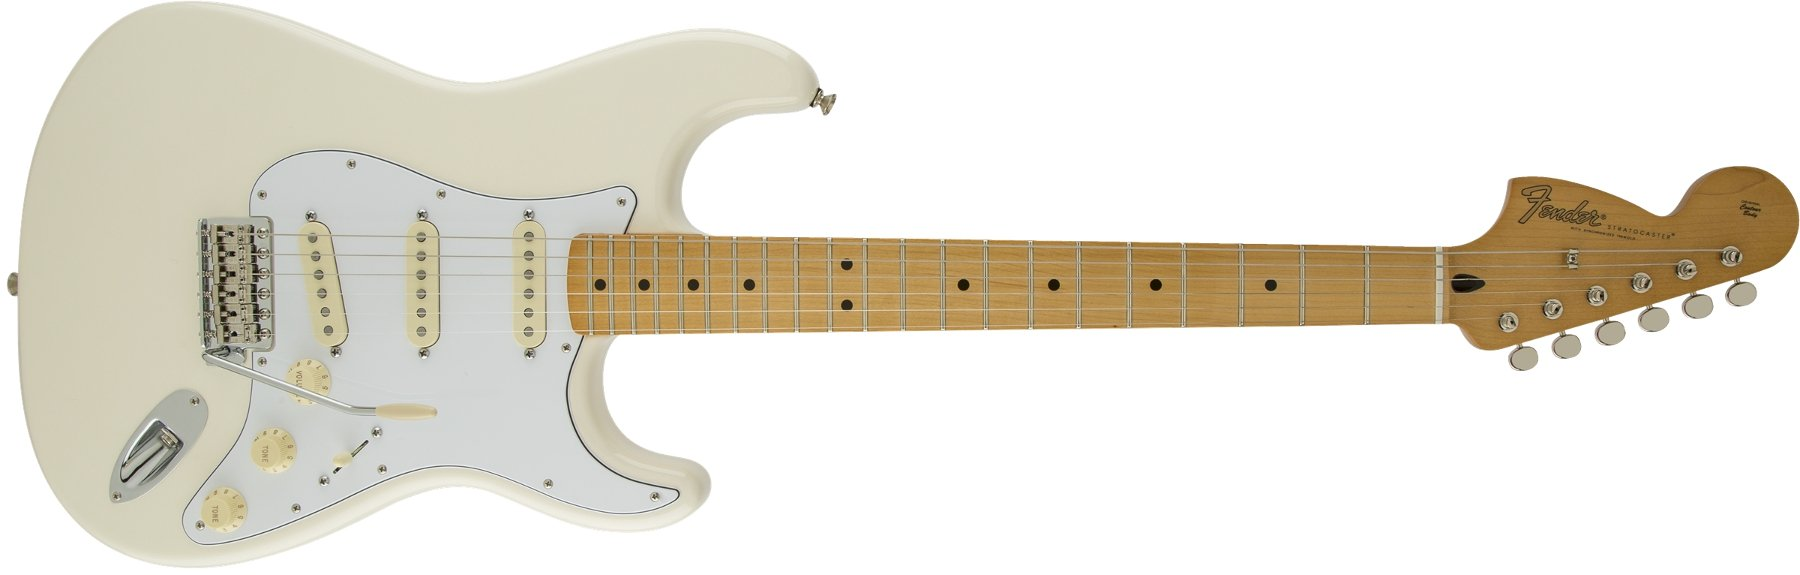 Special Edition Electric Guitar in Olympic White with Reverse Headstock and American Vintage '65 SSS Pickup Configuration